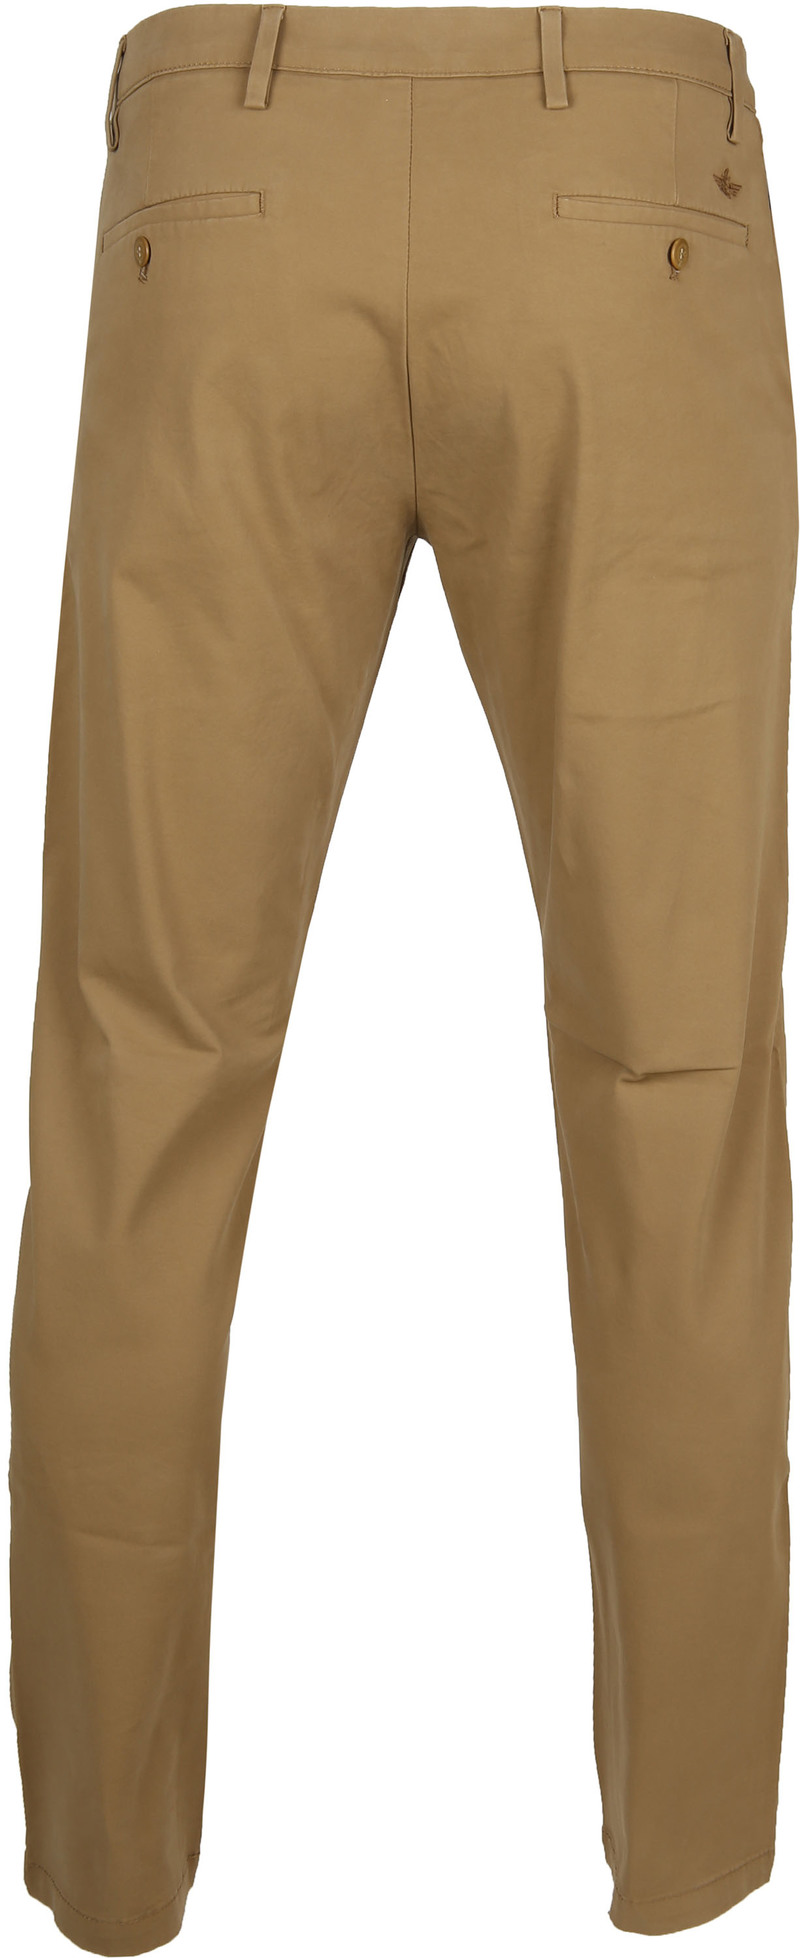 Dockers Alpha Tapered Chino 360 Flex Khaki foto 4